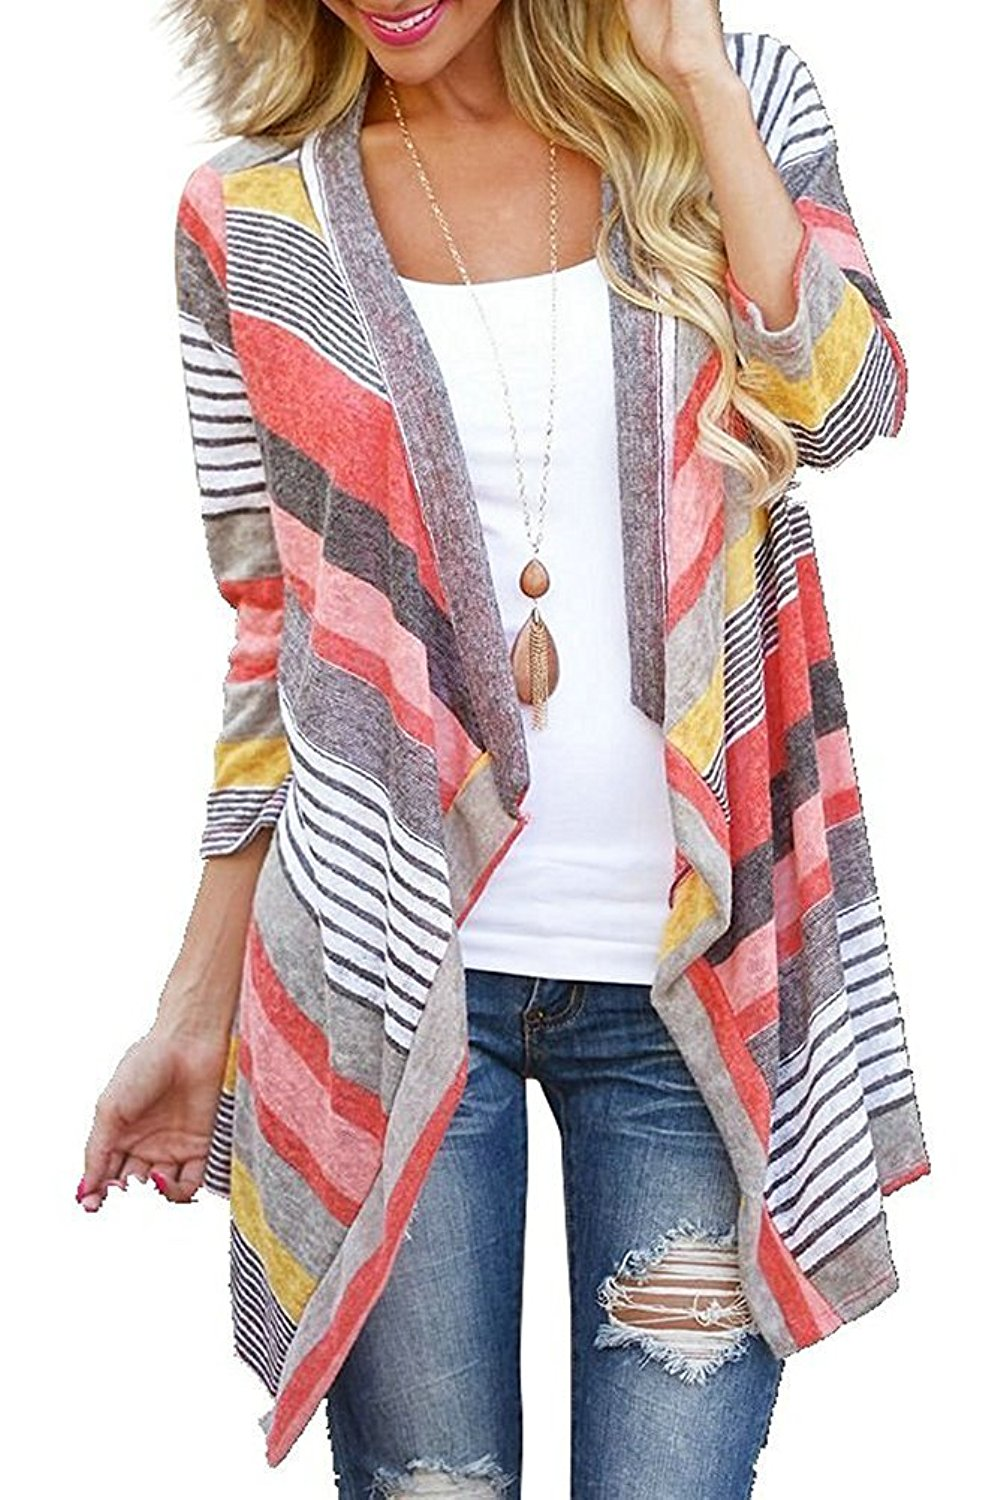 a86bc0182d Get Quotations · DEARCASE Women s 3 4 Sleeve Cardigans Striped Printed Open  Front Draped Kimono Loose Cardigan